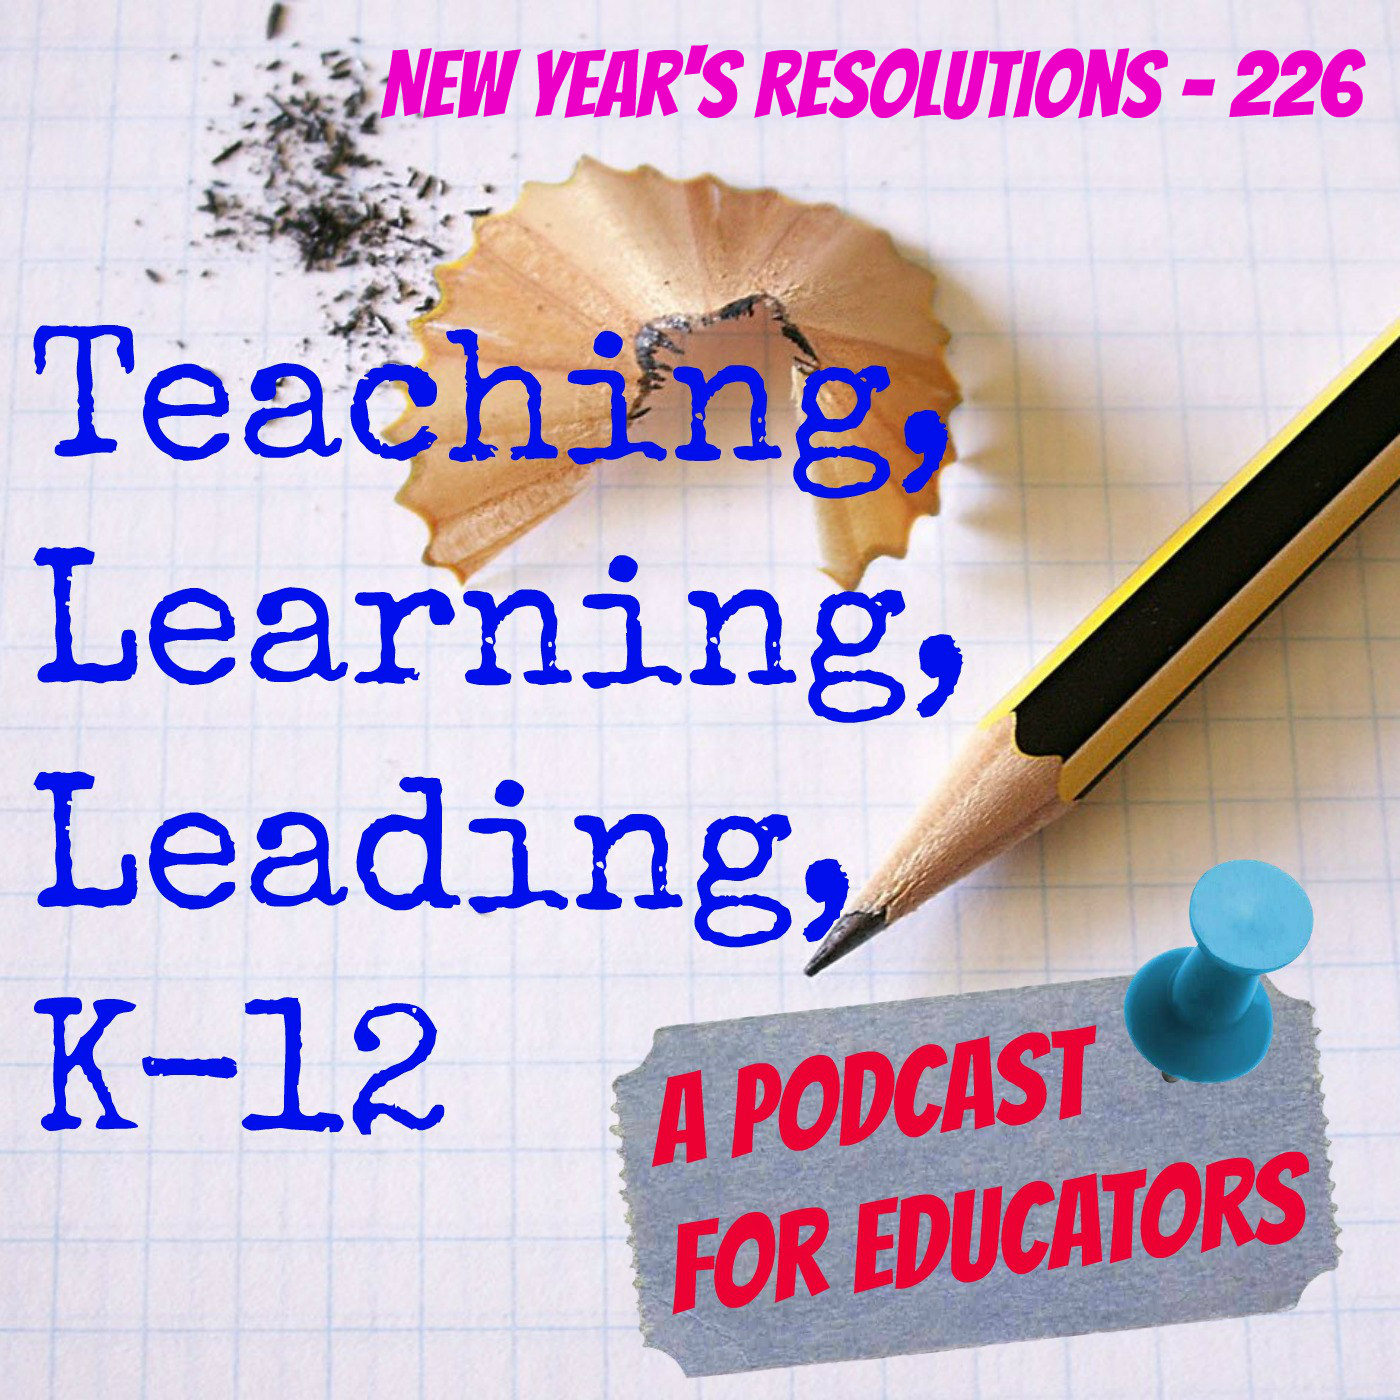 New Year's Resolutions - 226